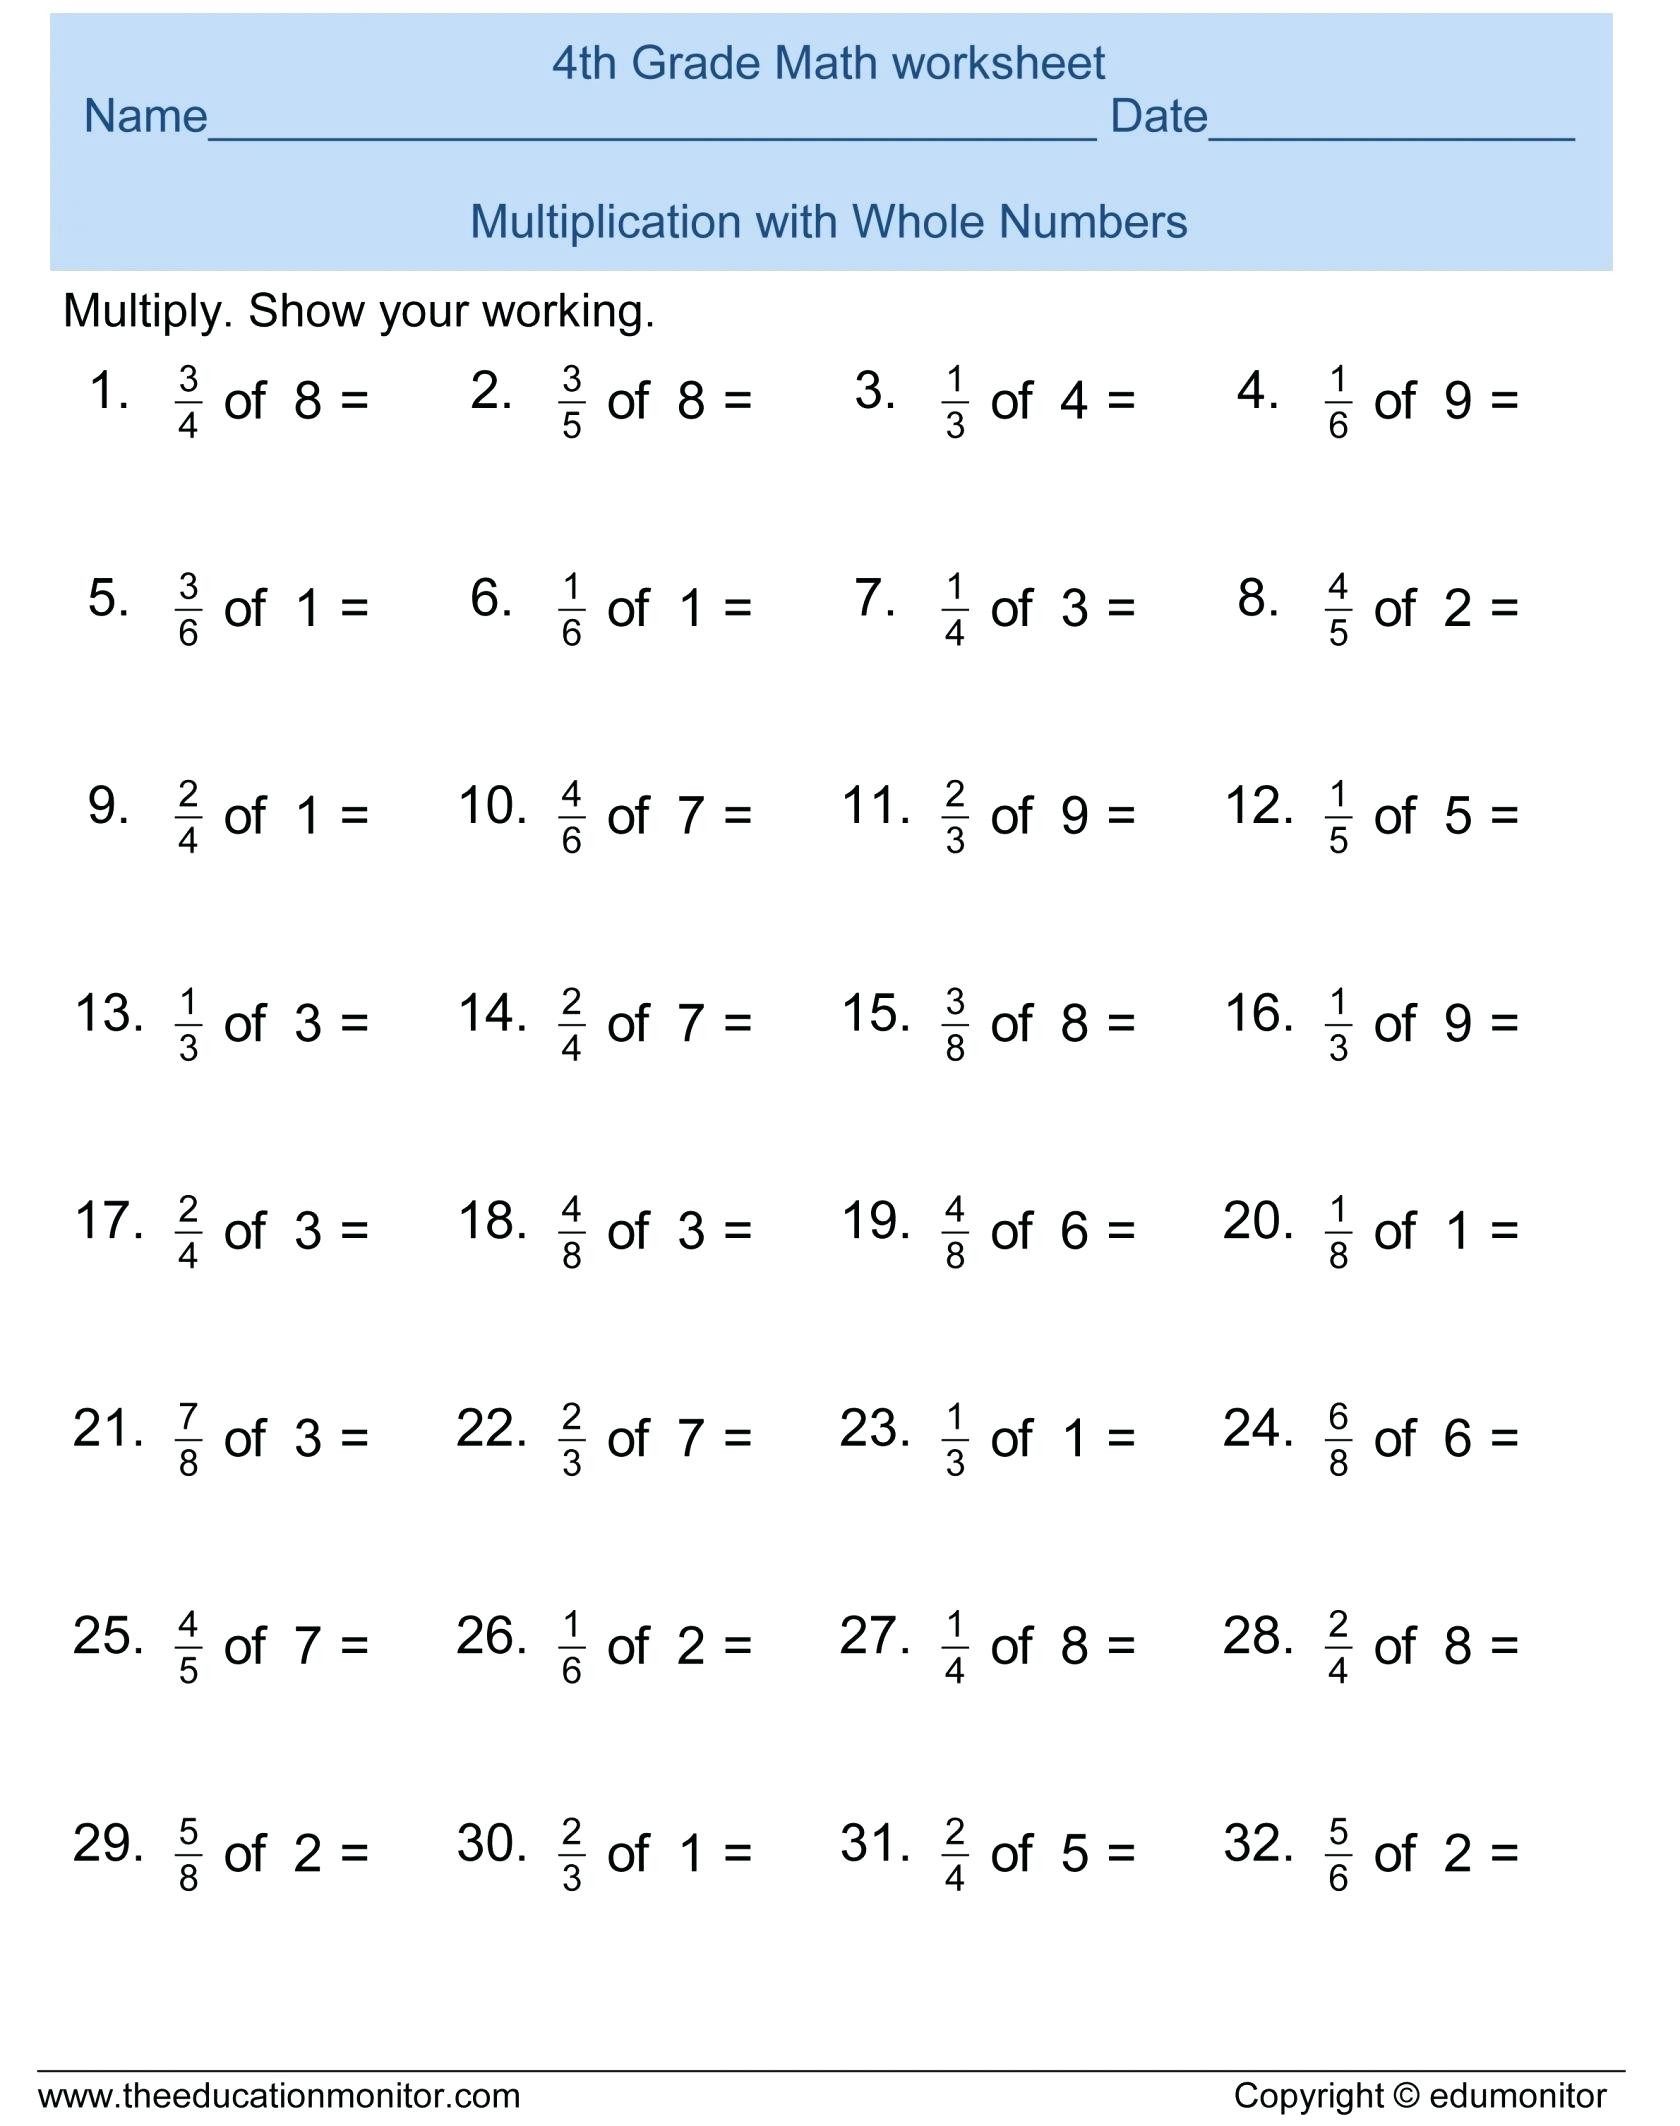 Estimation Maths Worksheets Estimating Sums and Differences Worksheets